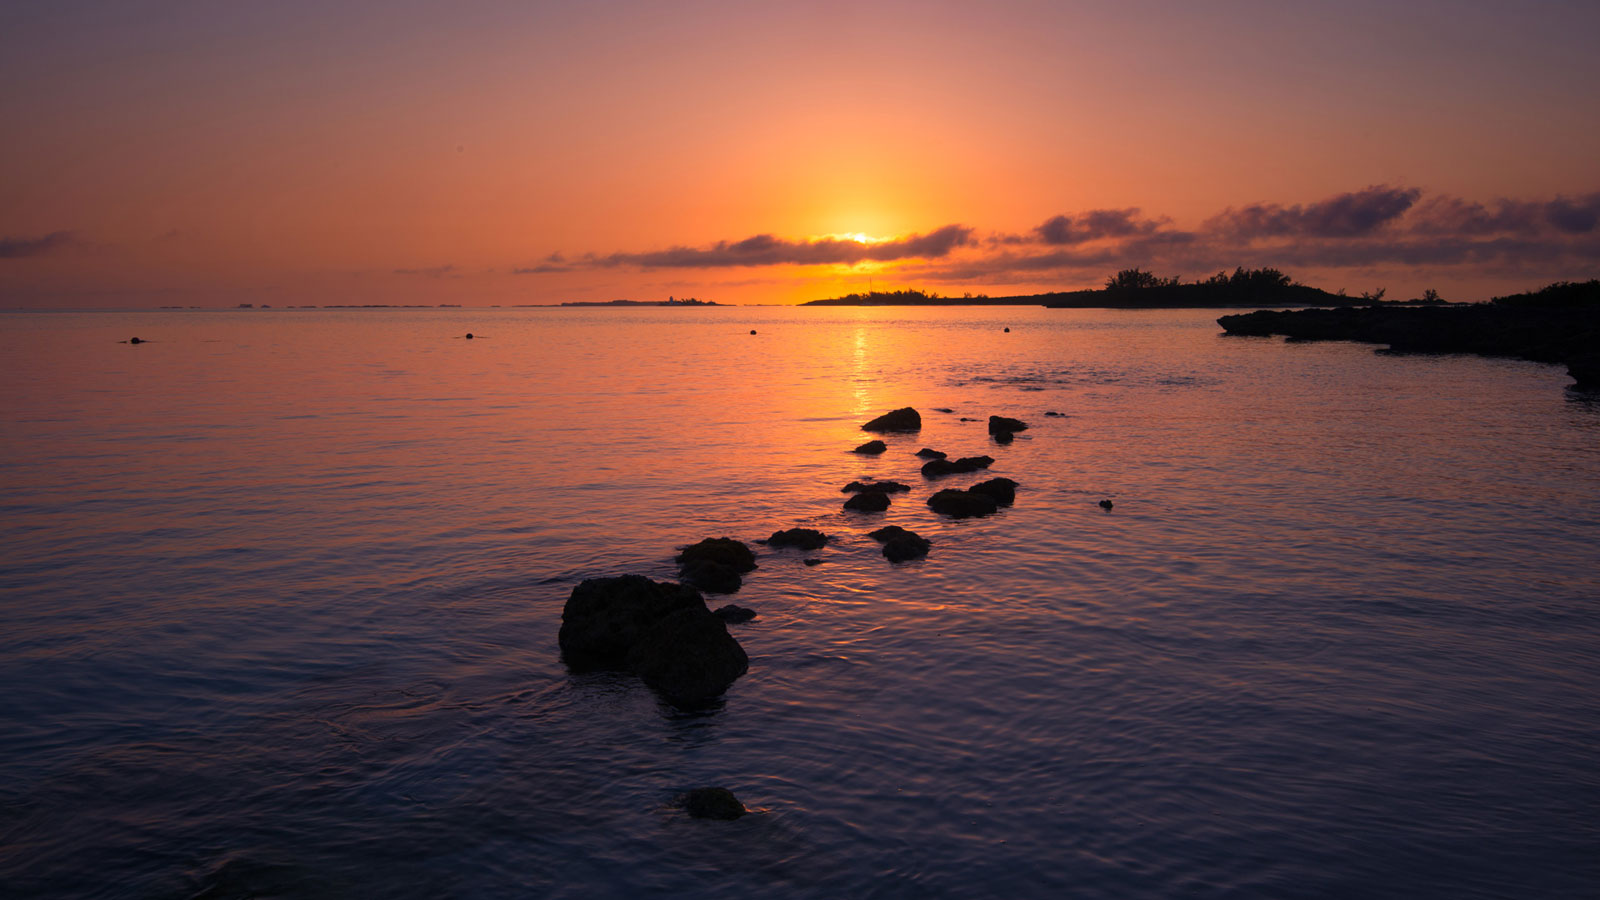 Rocks dot the water leading the say to the sunrise on Paradise Island Bahamas